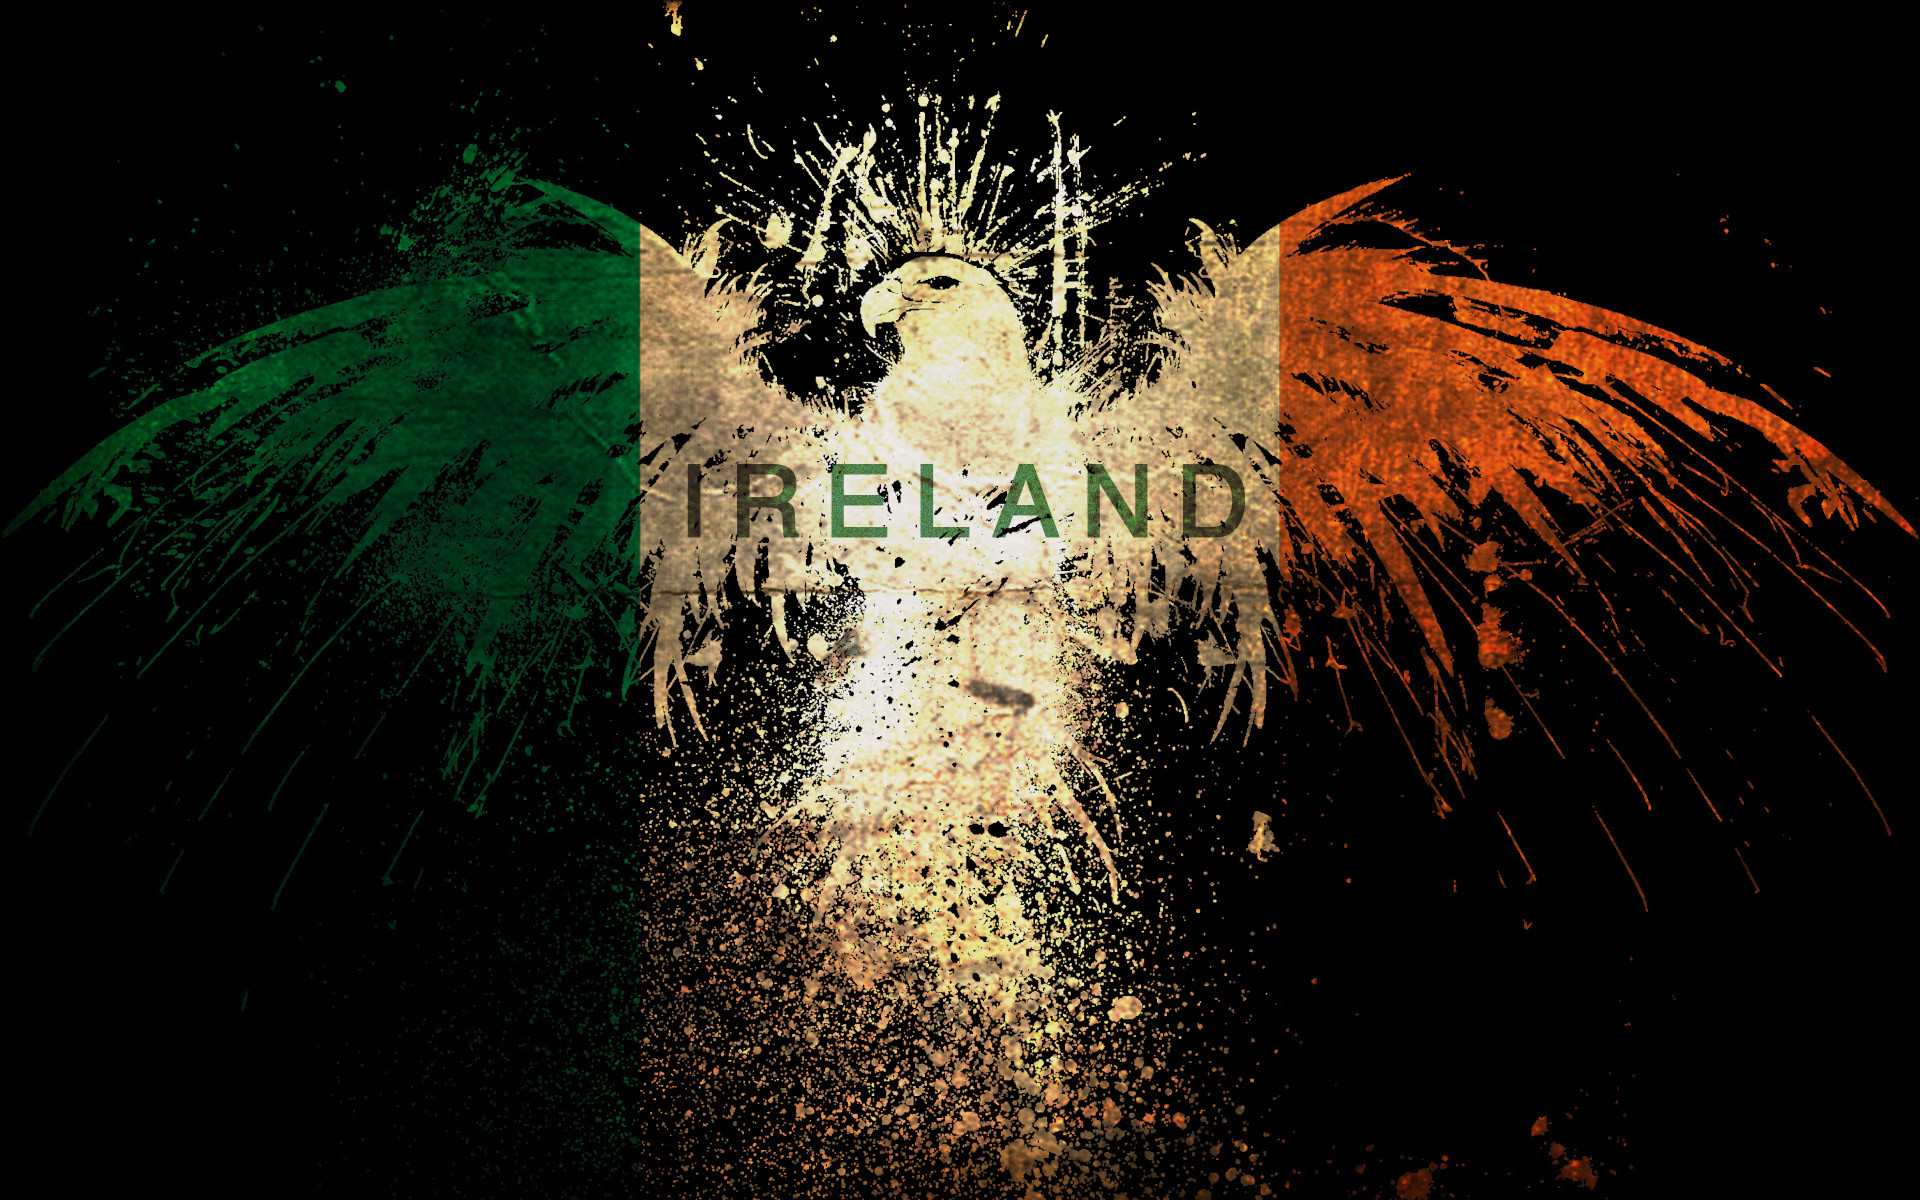 1920x1200 Cool Ireland Wallpaper